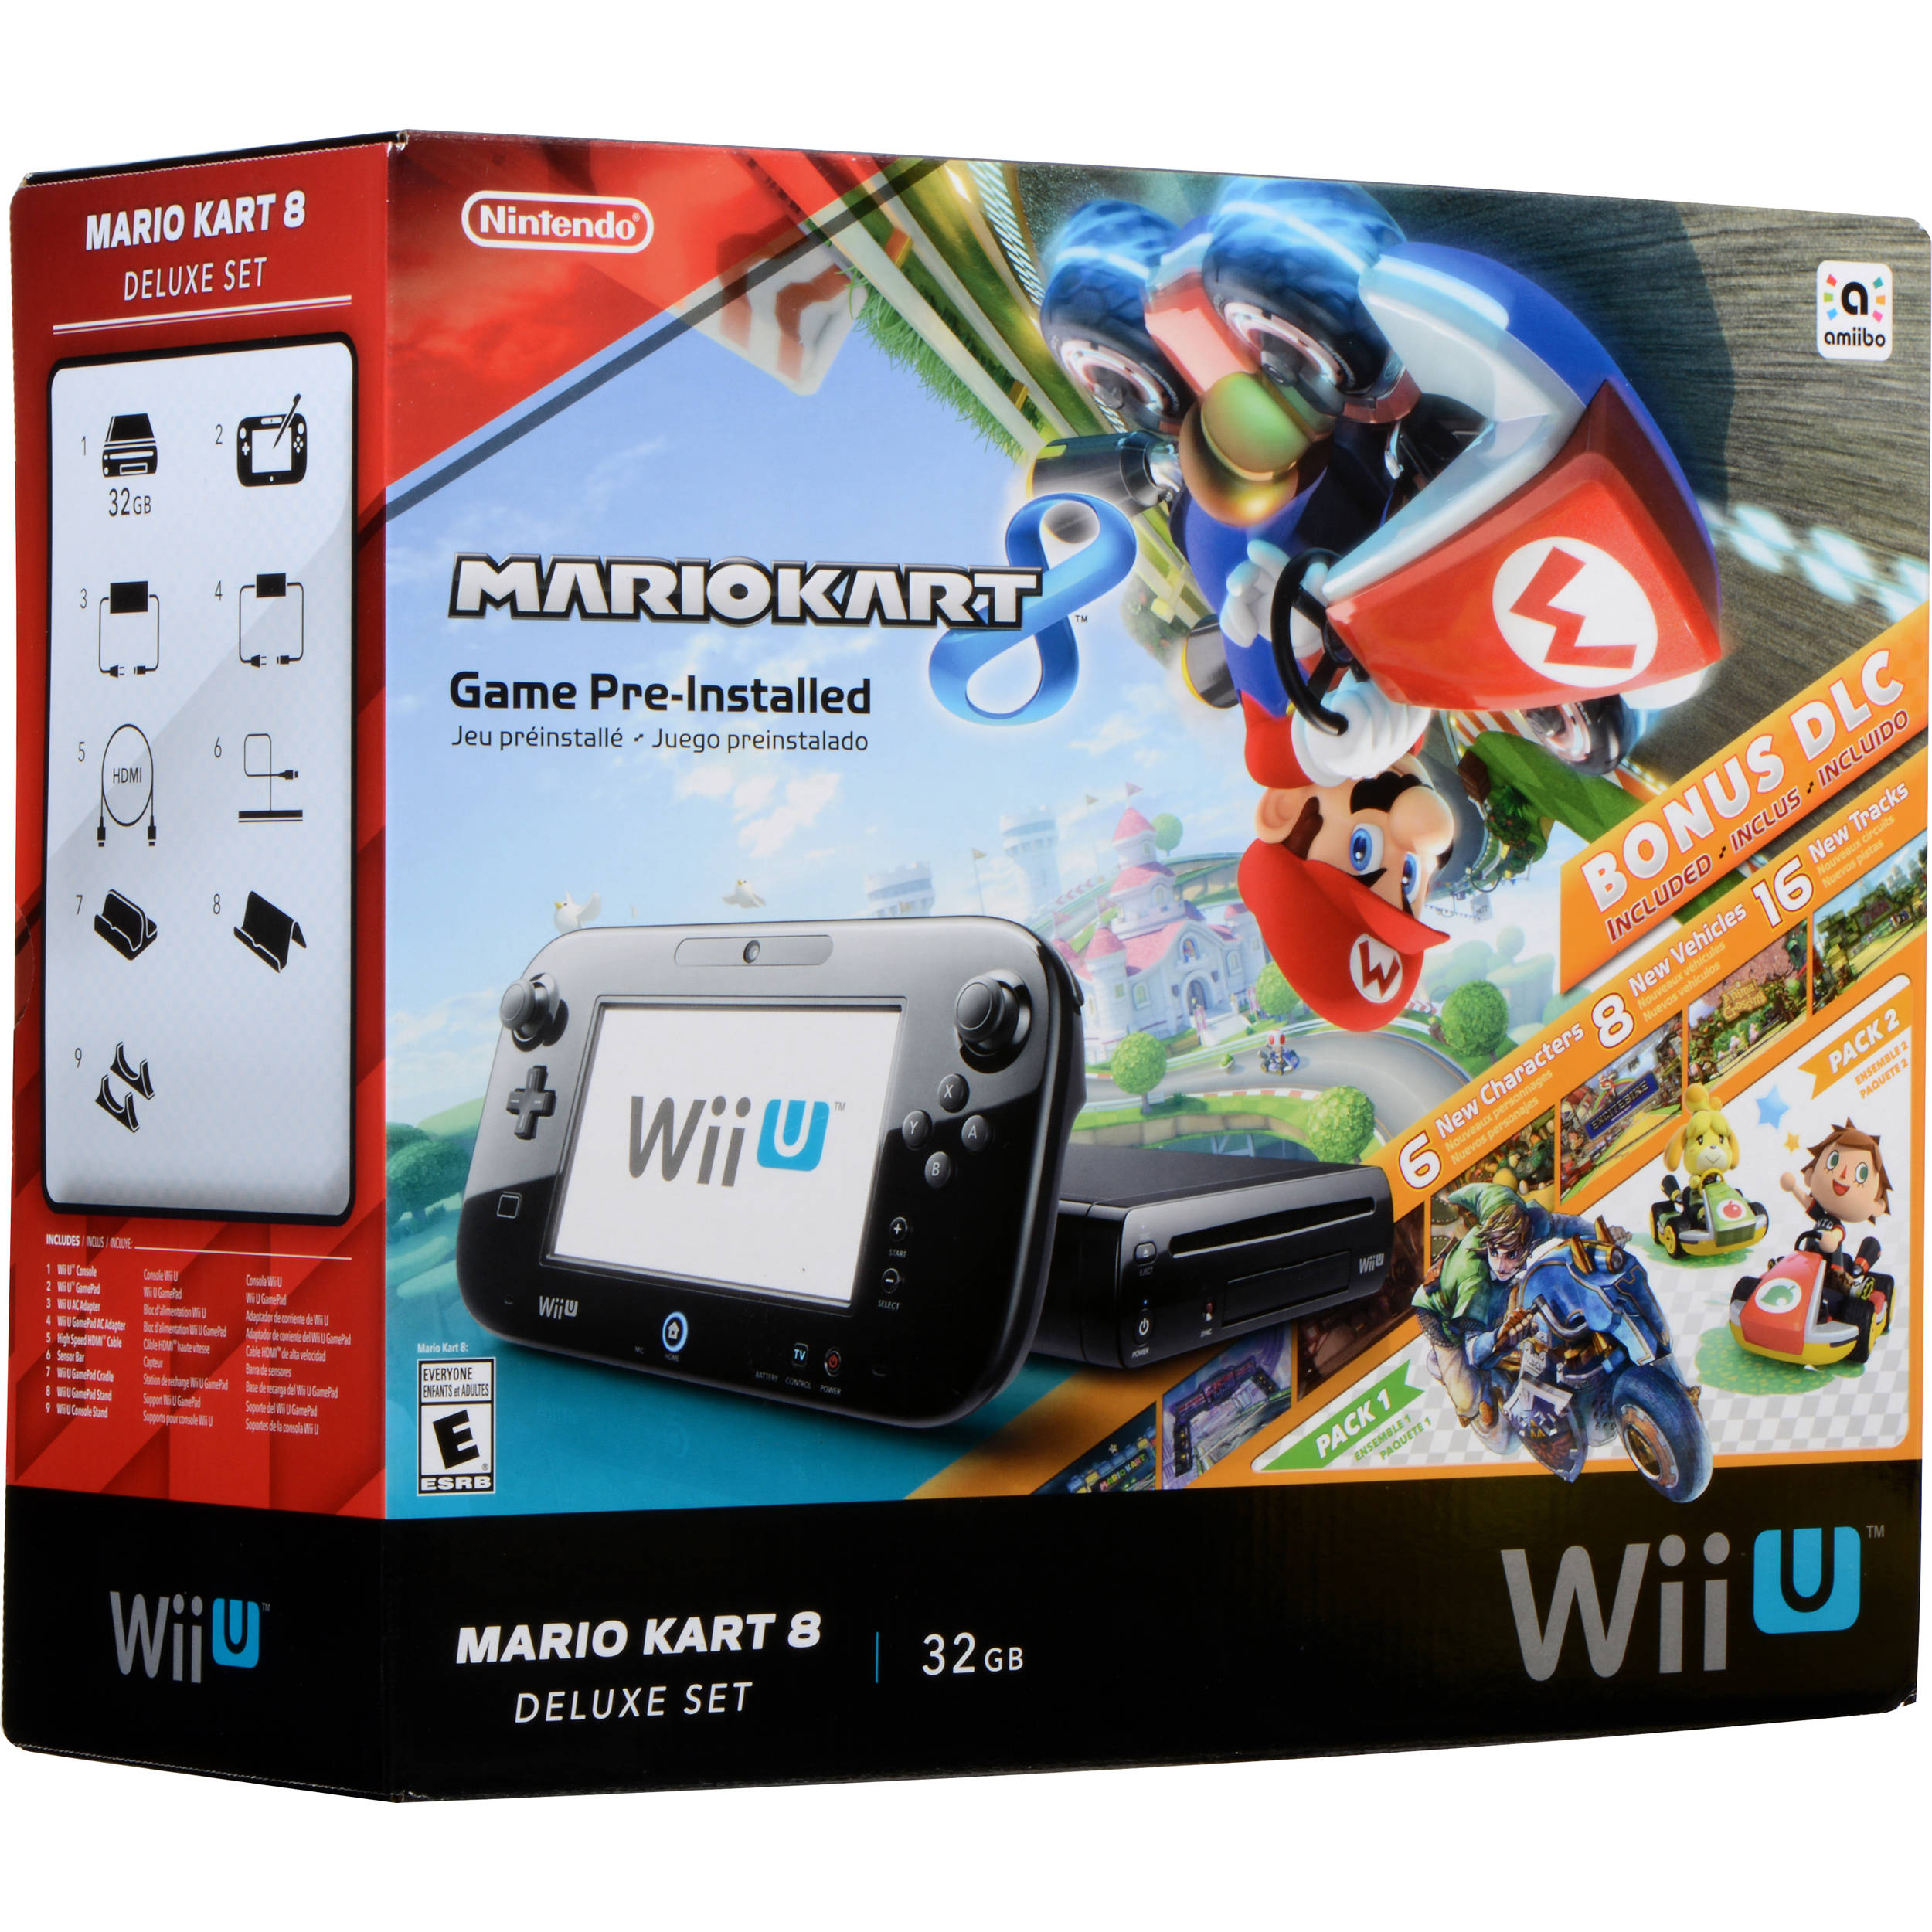 Mario kart 8 for sale - Nintendo Wii U Mario Kart 8 Deluxe Bundle Black